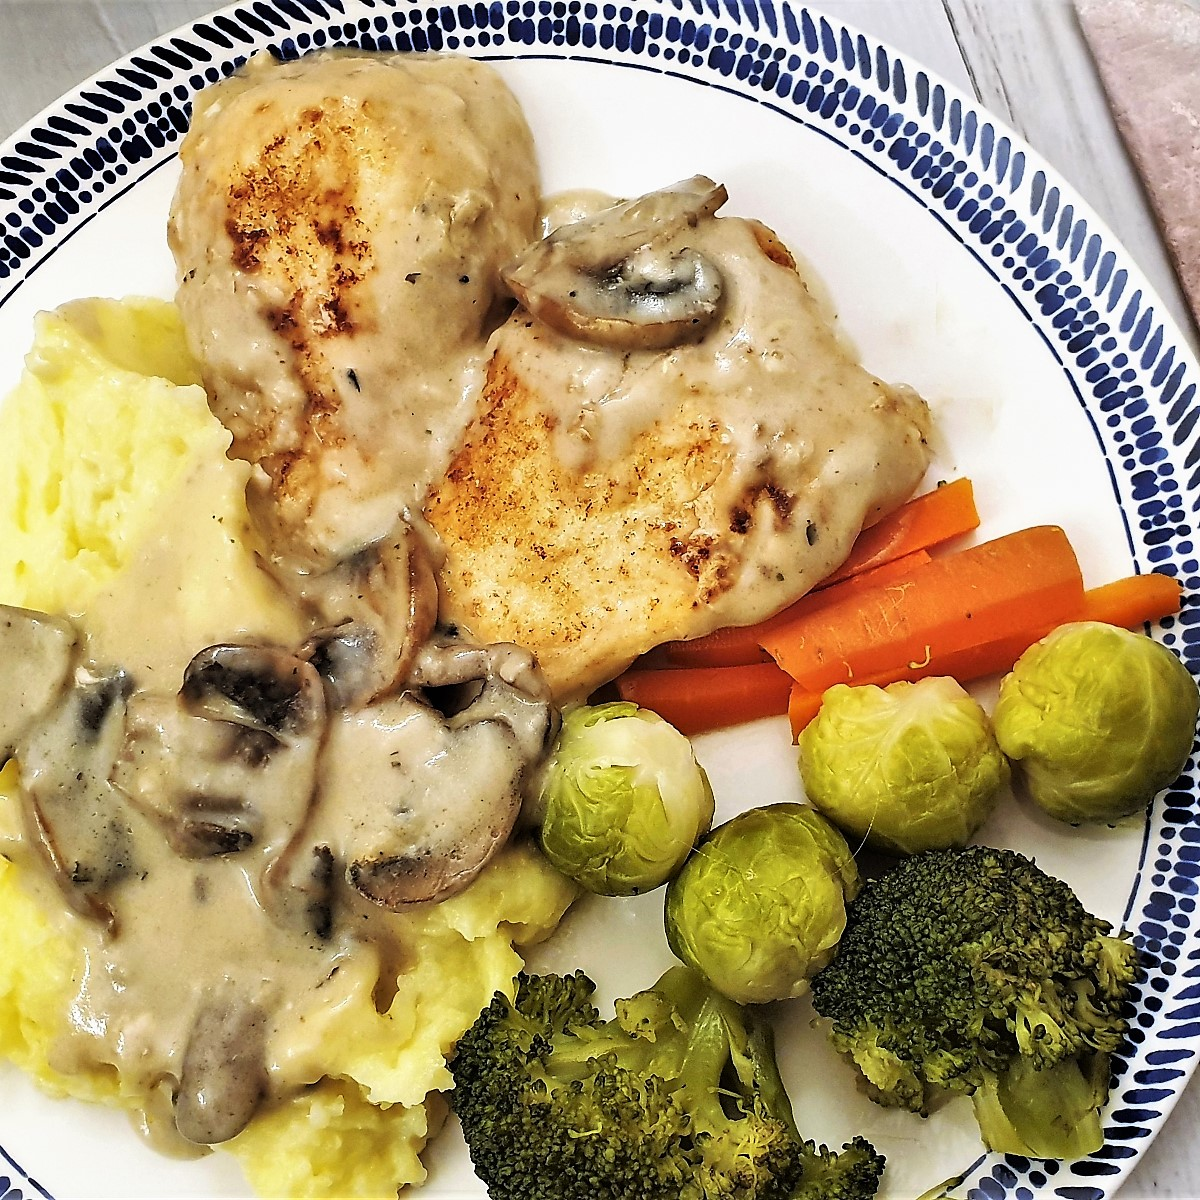 A plate of creamy chicken marsala with mushrooms, mashed potatoes and vegetables.